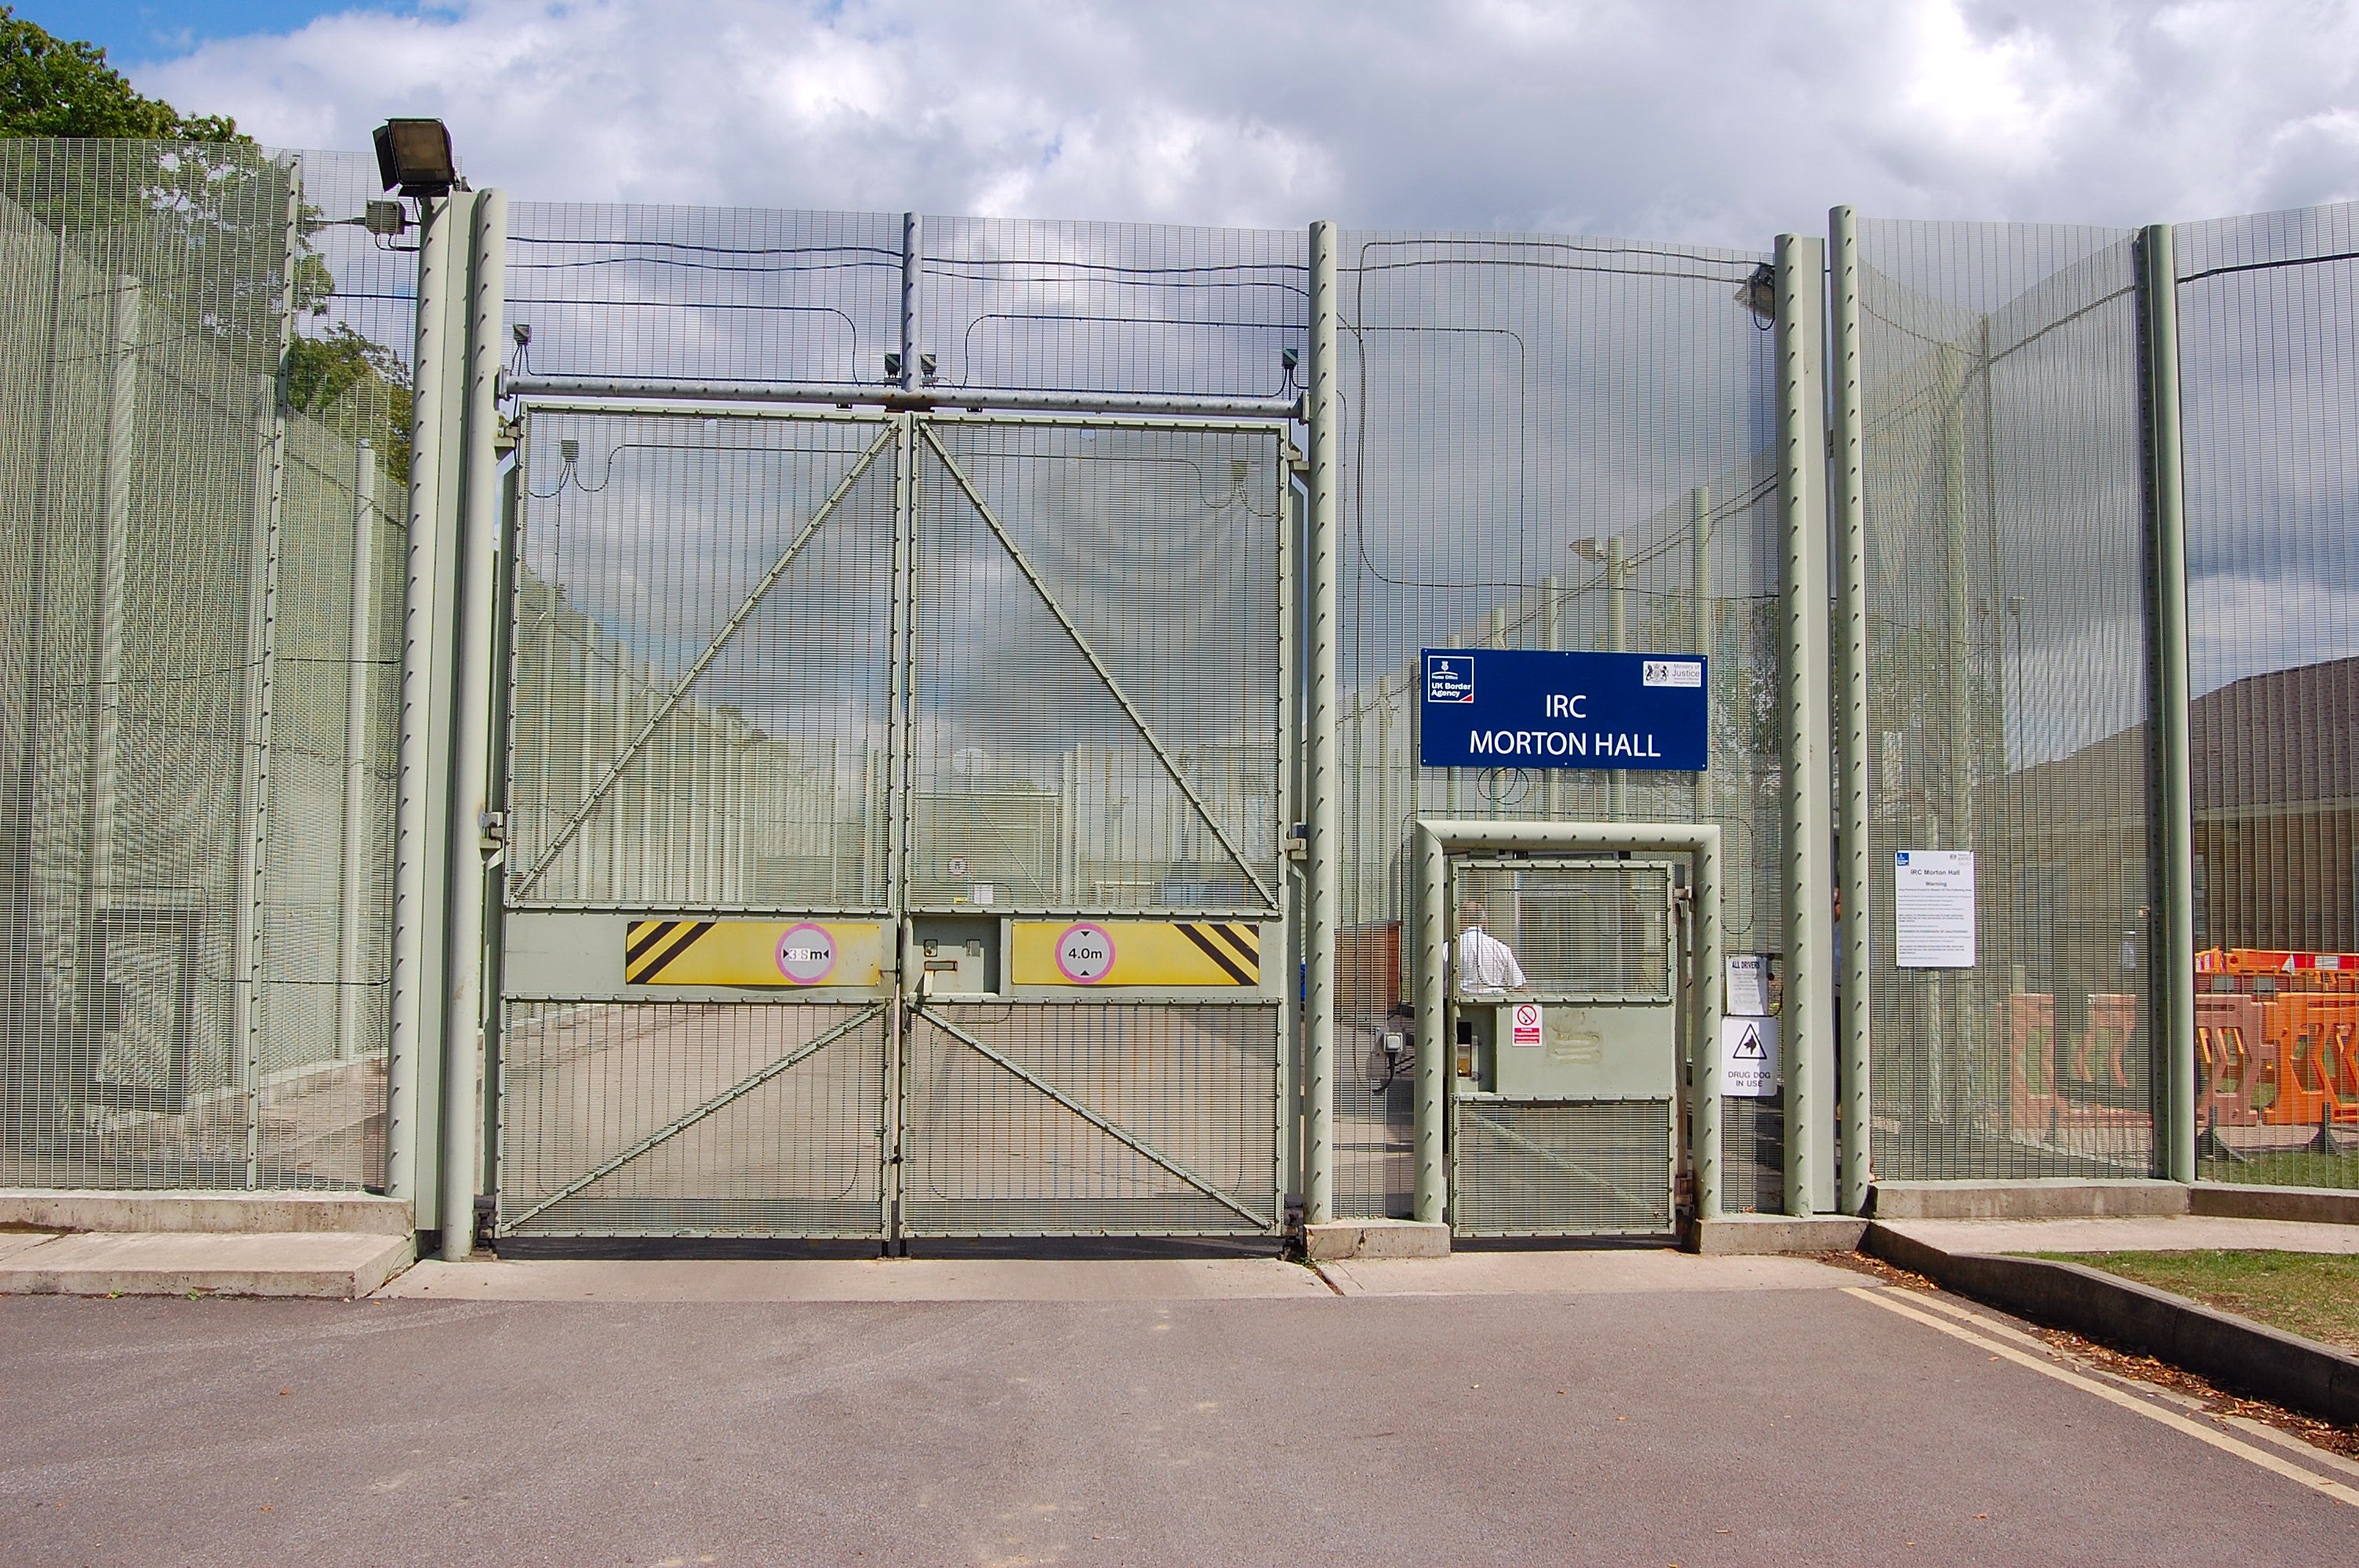 A picture of the outside of a detention centre in the UK